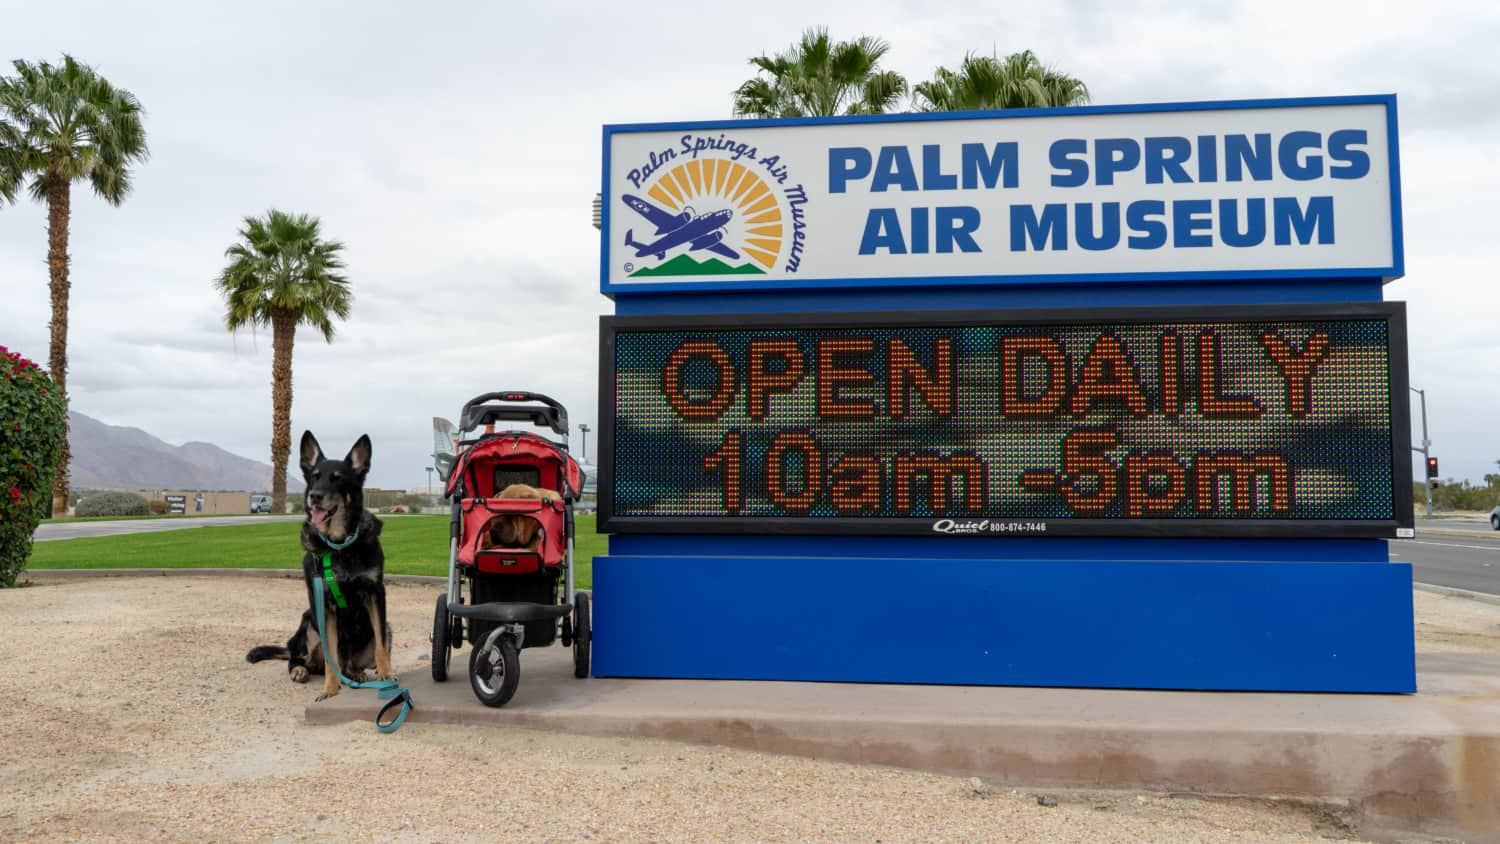 The Pet Friendly Palm Springs Air Museum